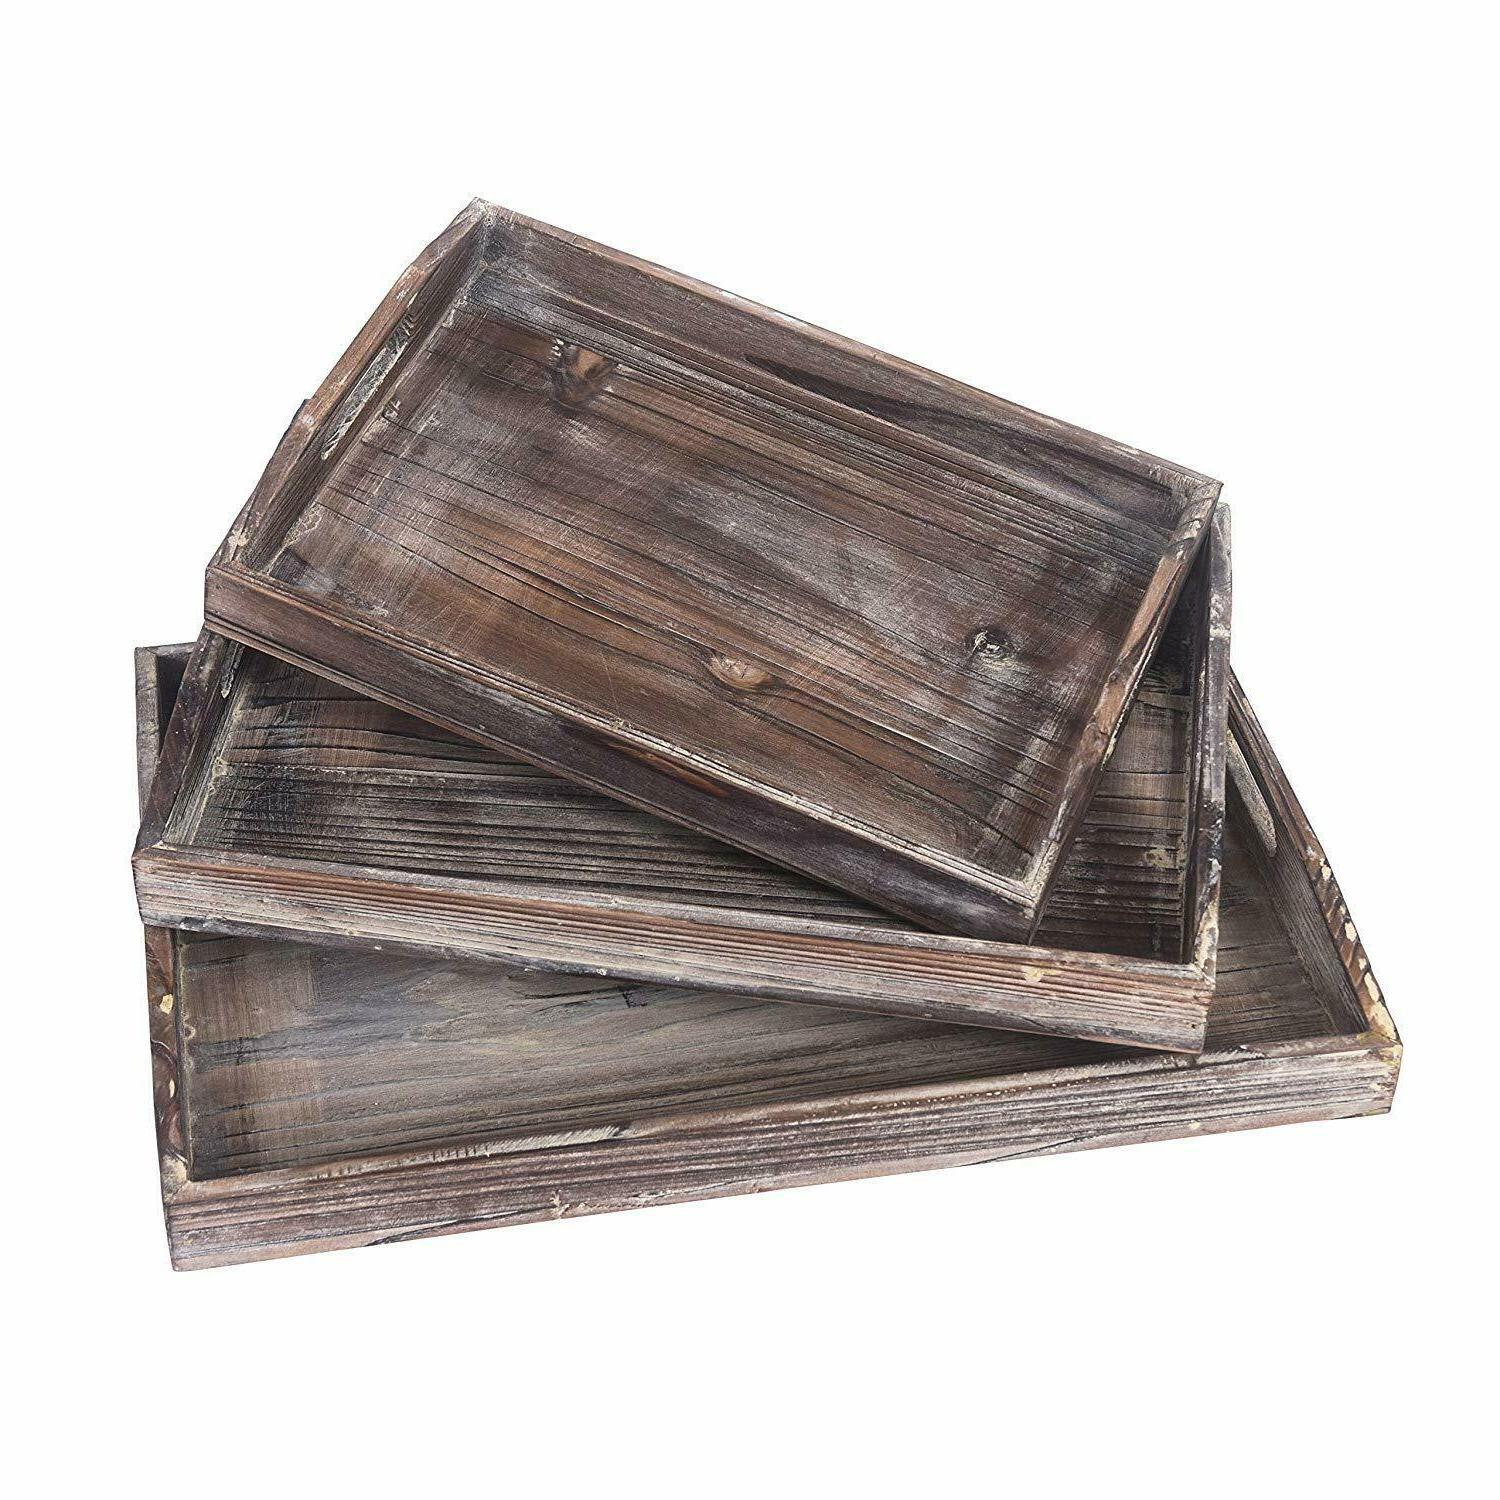 ottoman wooden serving trays rustic trays plate